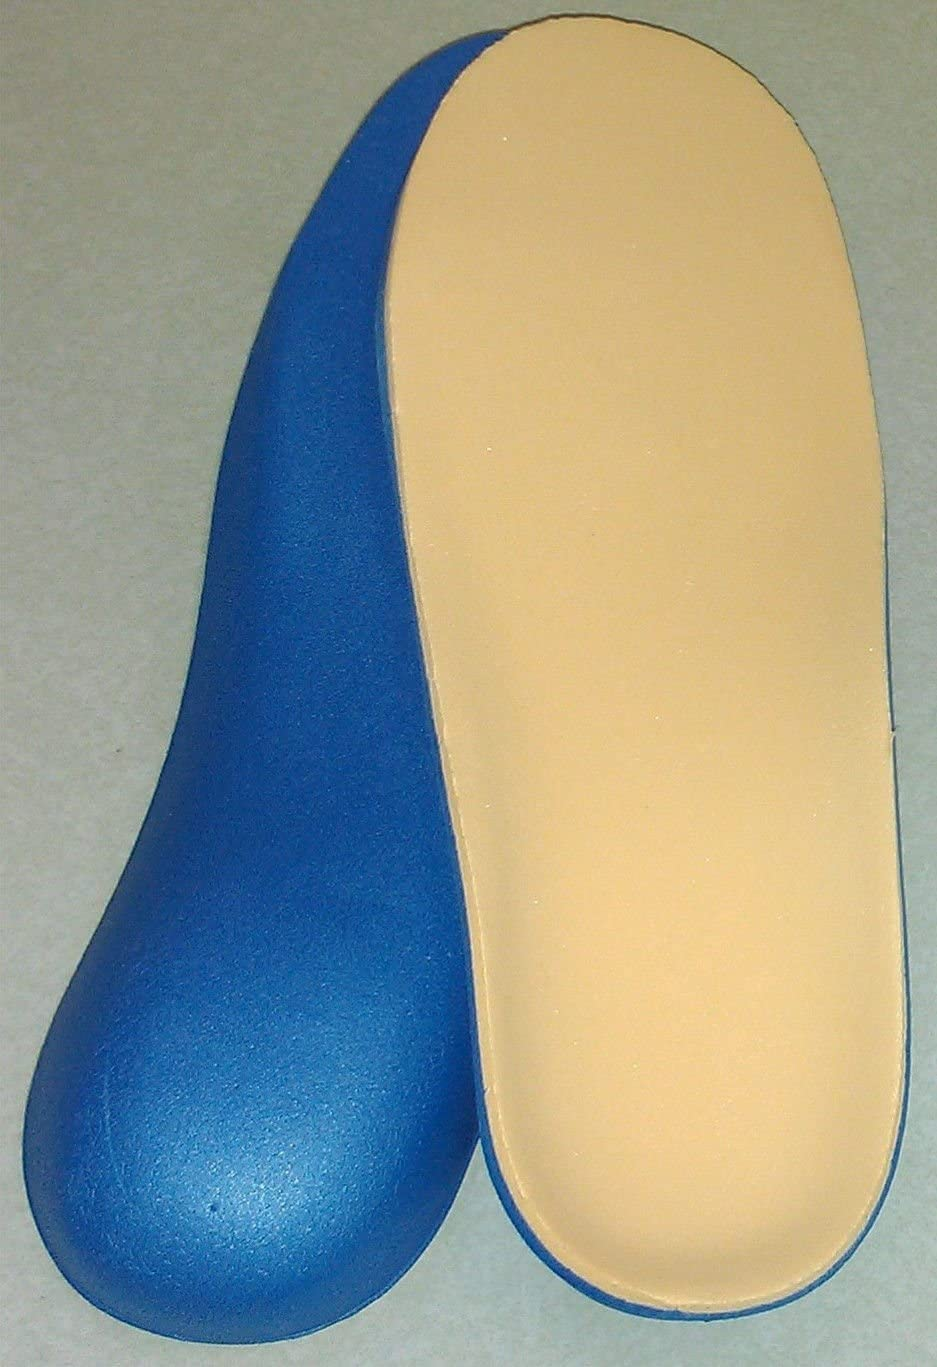 CMS DIABETIC INSOLES Pre-Fabricated Heat Moldable EVA Medicare Inserts Arch Supports M10-10.5/W12-12.5 A5512/A5510